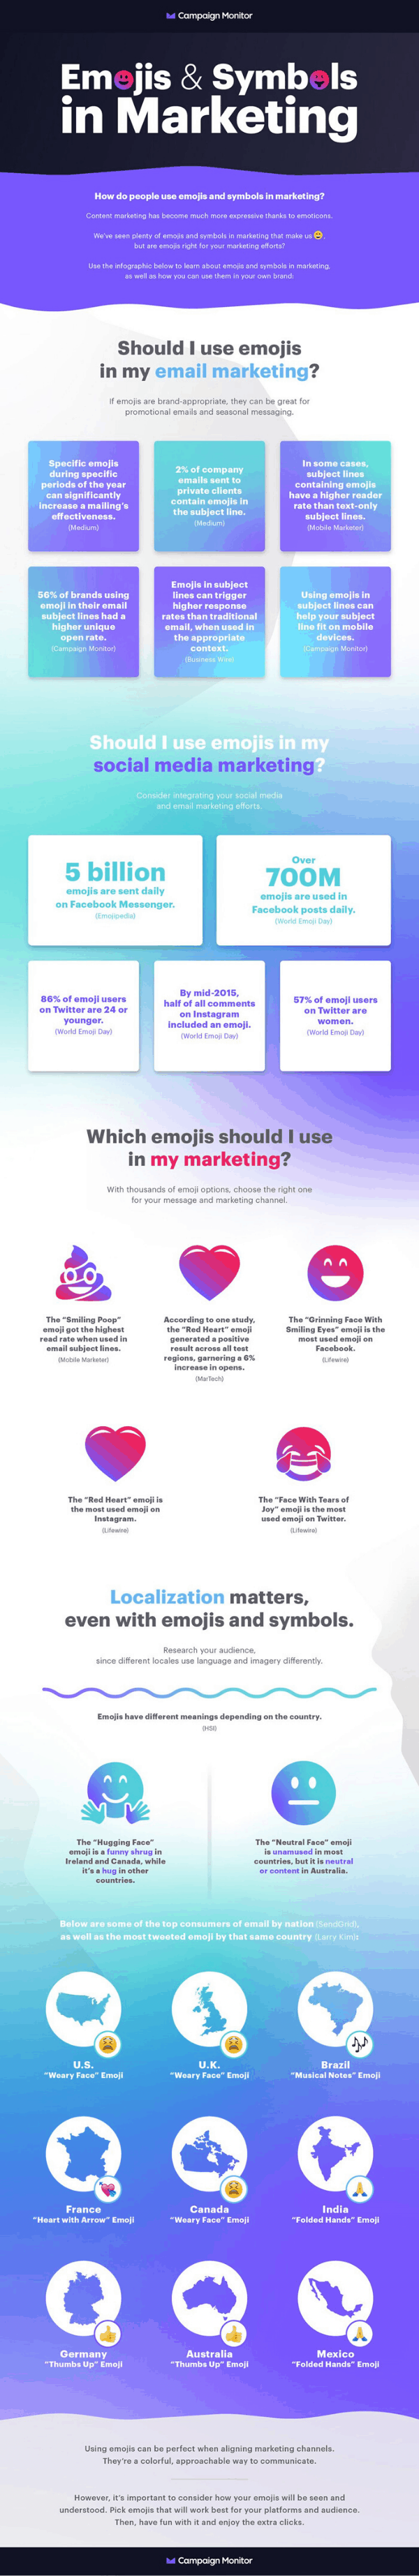 Get more tips and learn how to use emojis effectively as part of your content marketing strategy, in this great infographic!